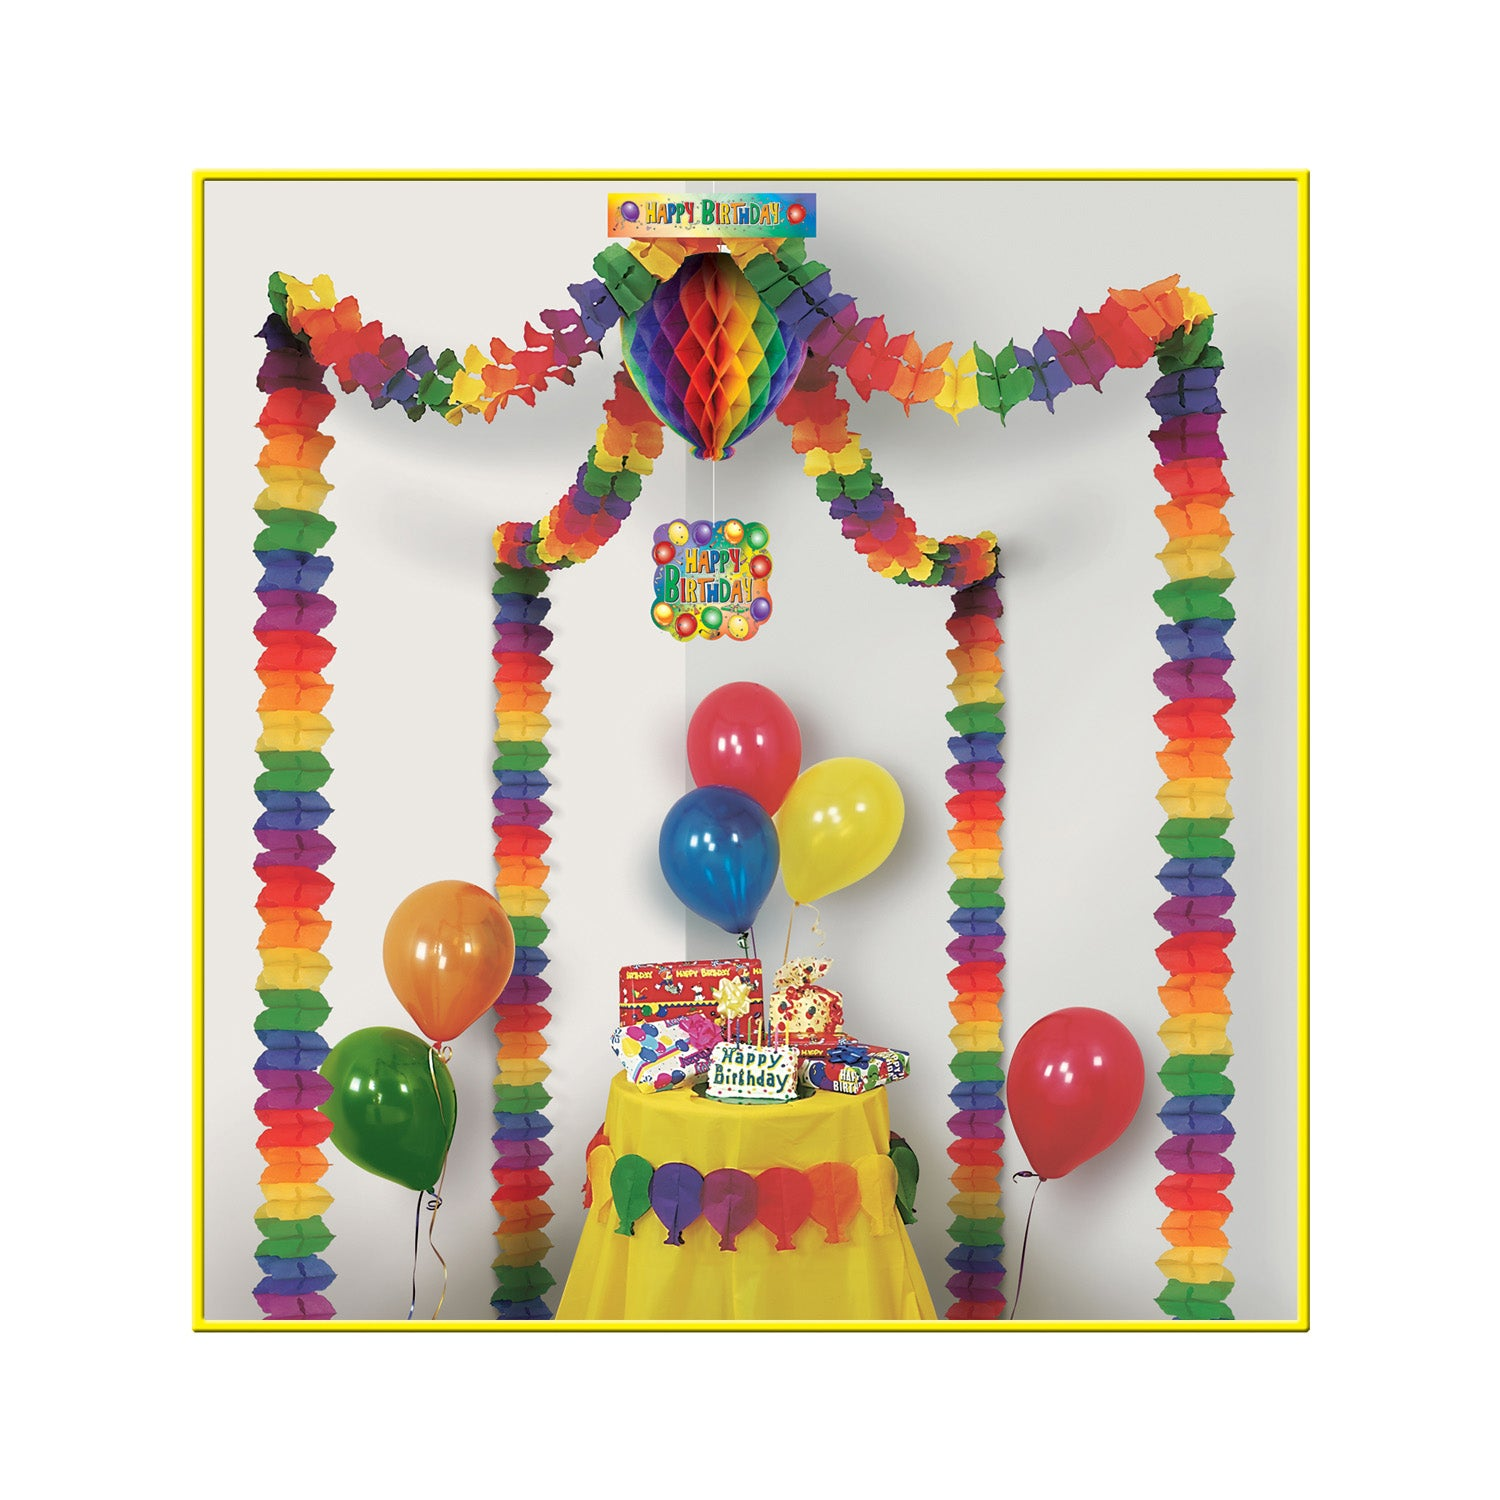 Happy Birthday Party Canopy by Beistle - Birthday Party Supplies Decorations